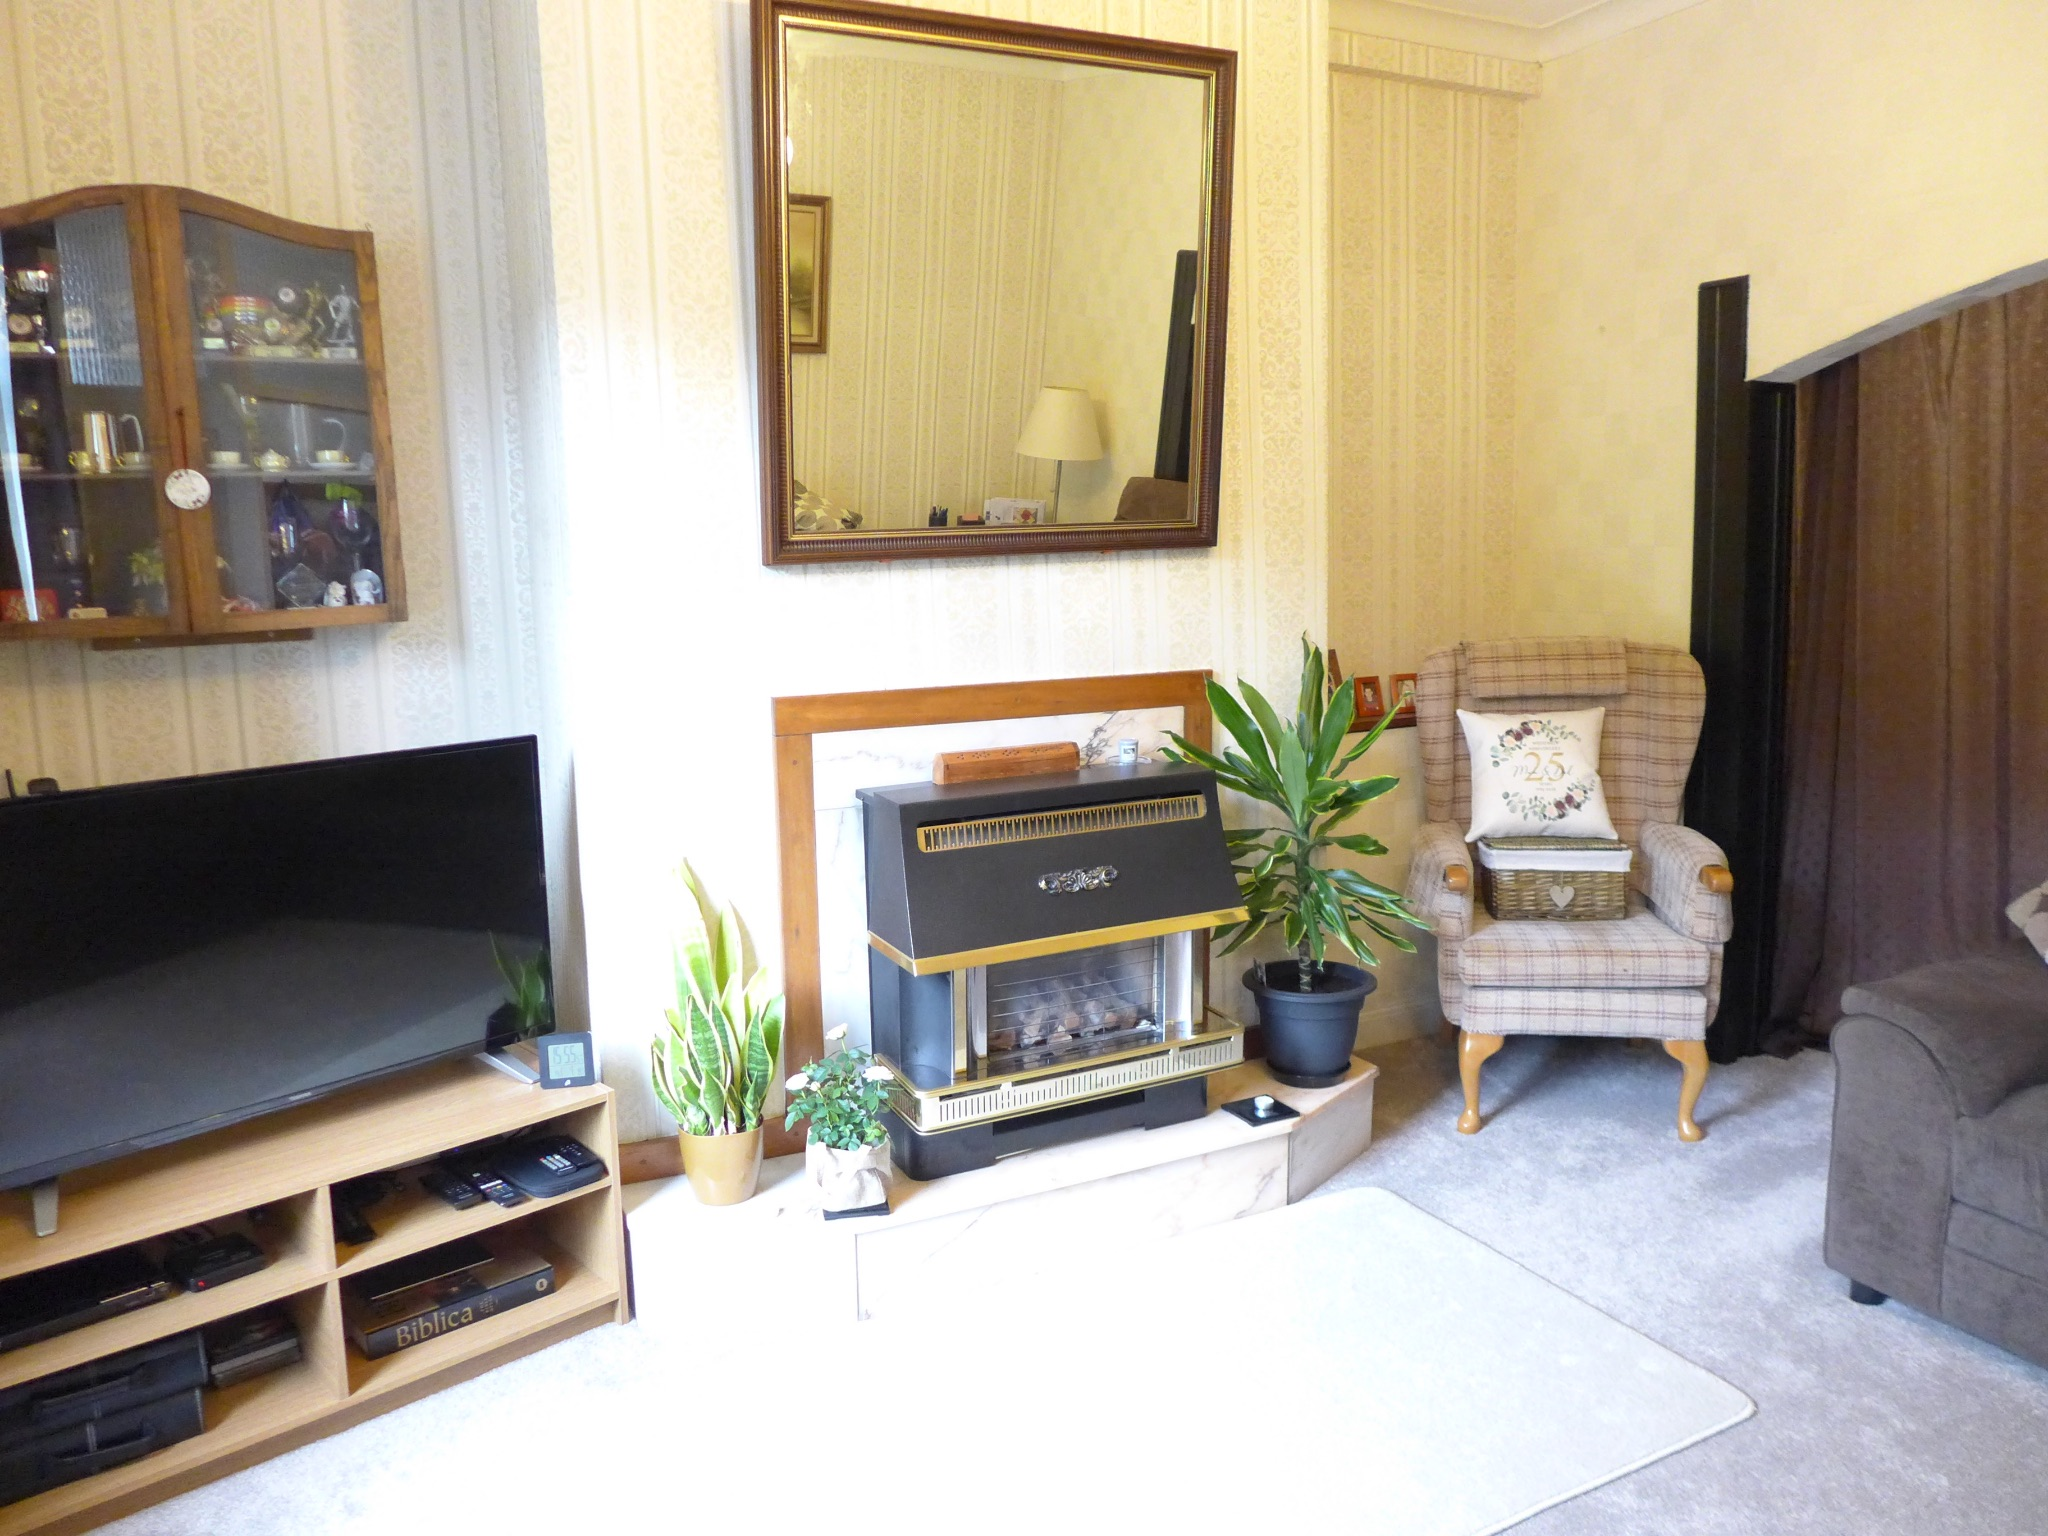 3 bedroom mid terraced house For Sale in Calderdale - Property photograph.